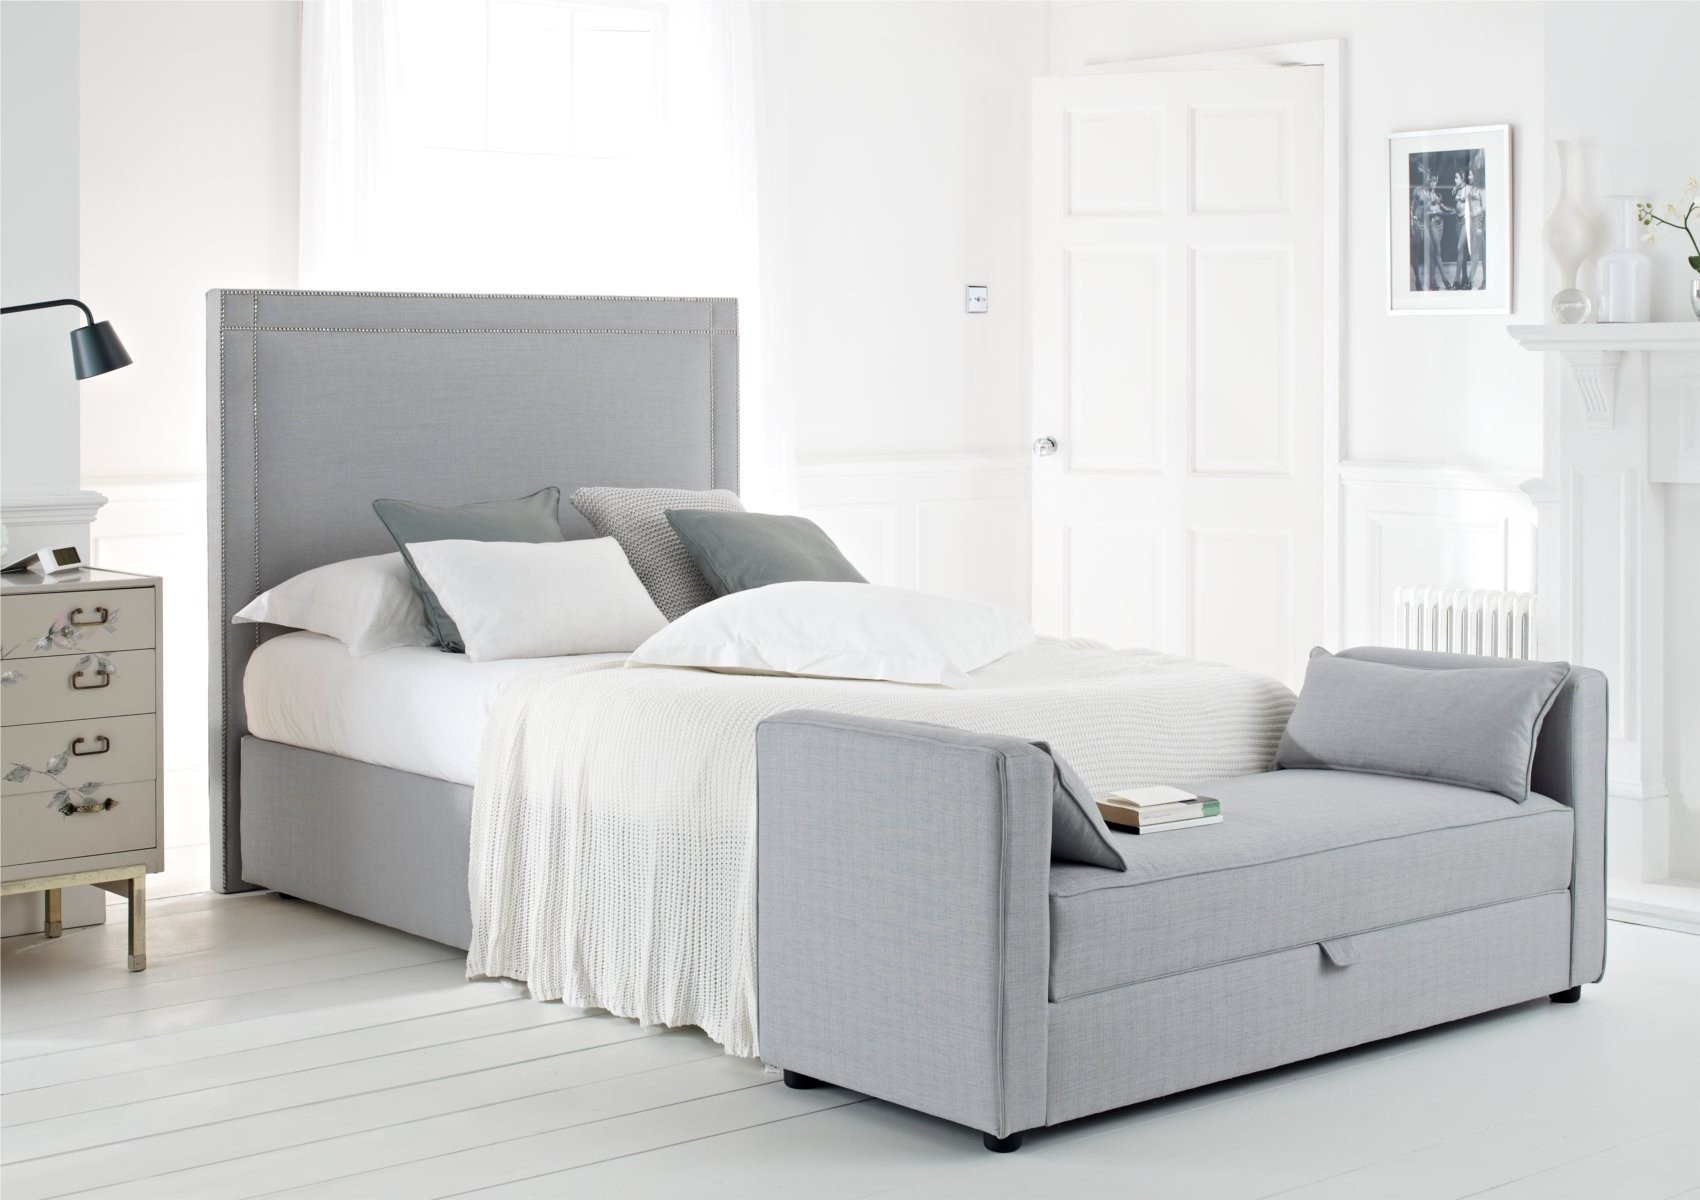 Double Bed Frame With High Headboard